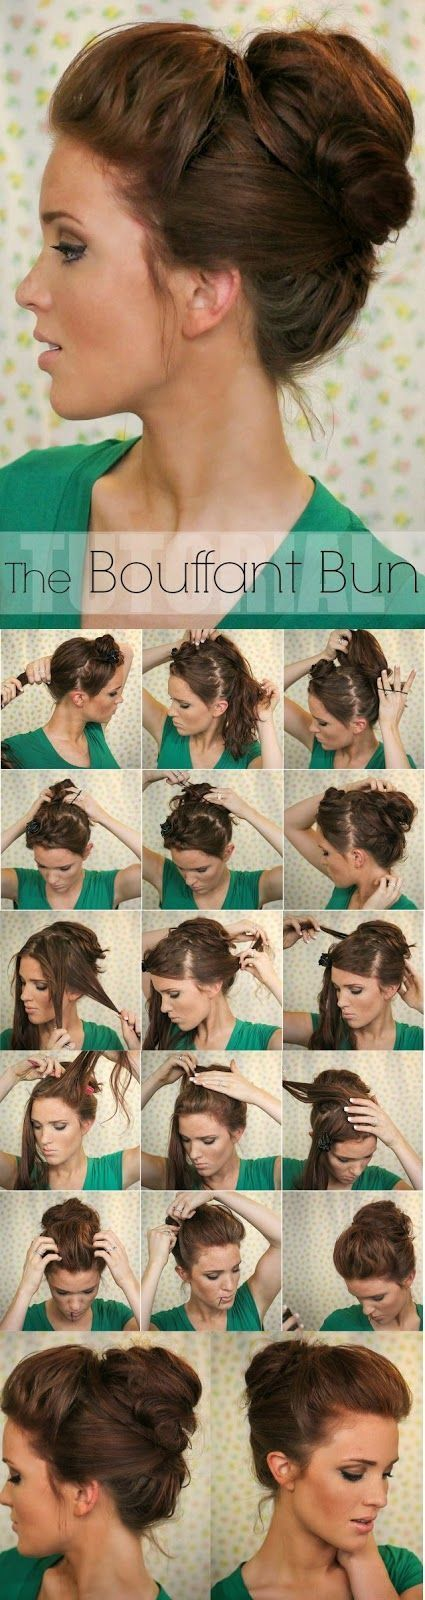 Fashionable Hairstyle Tutorials for Long Thick Hair - Likes